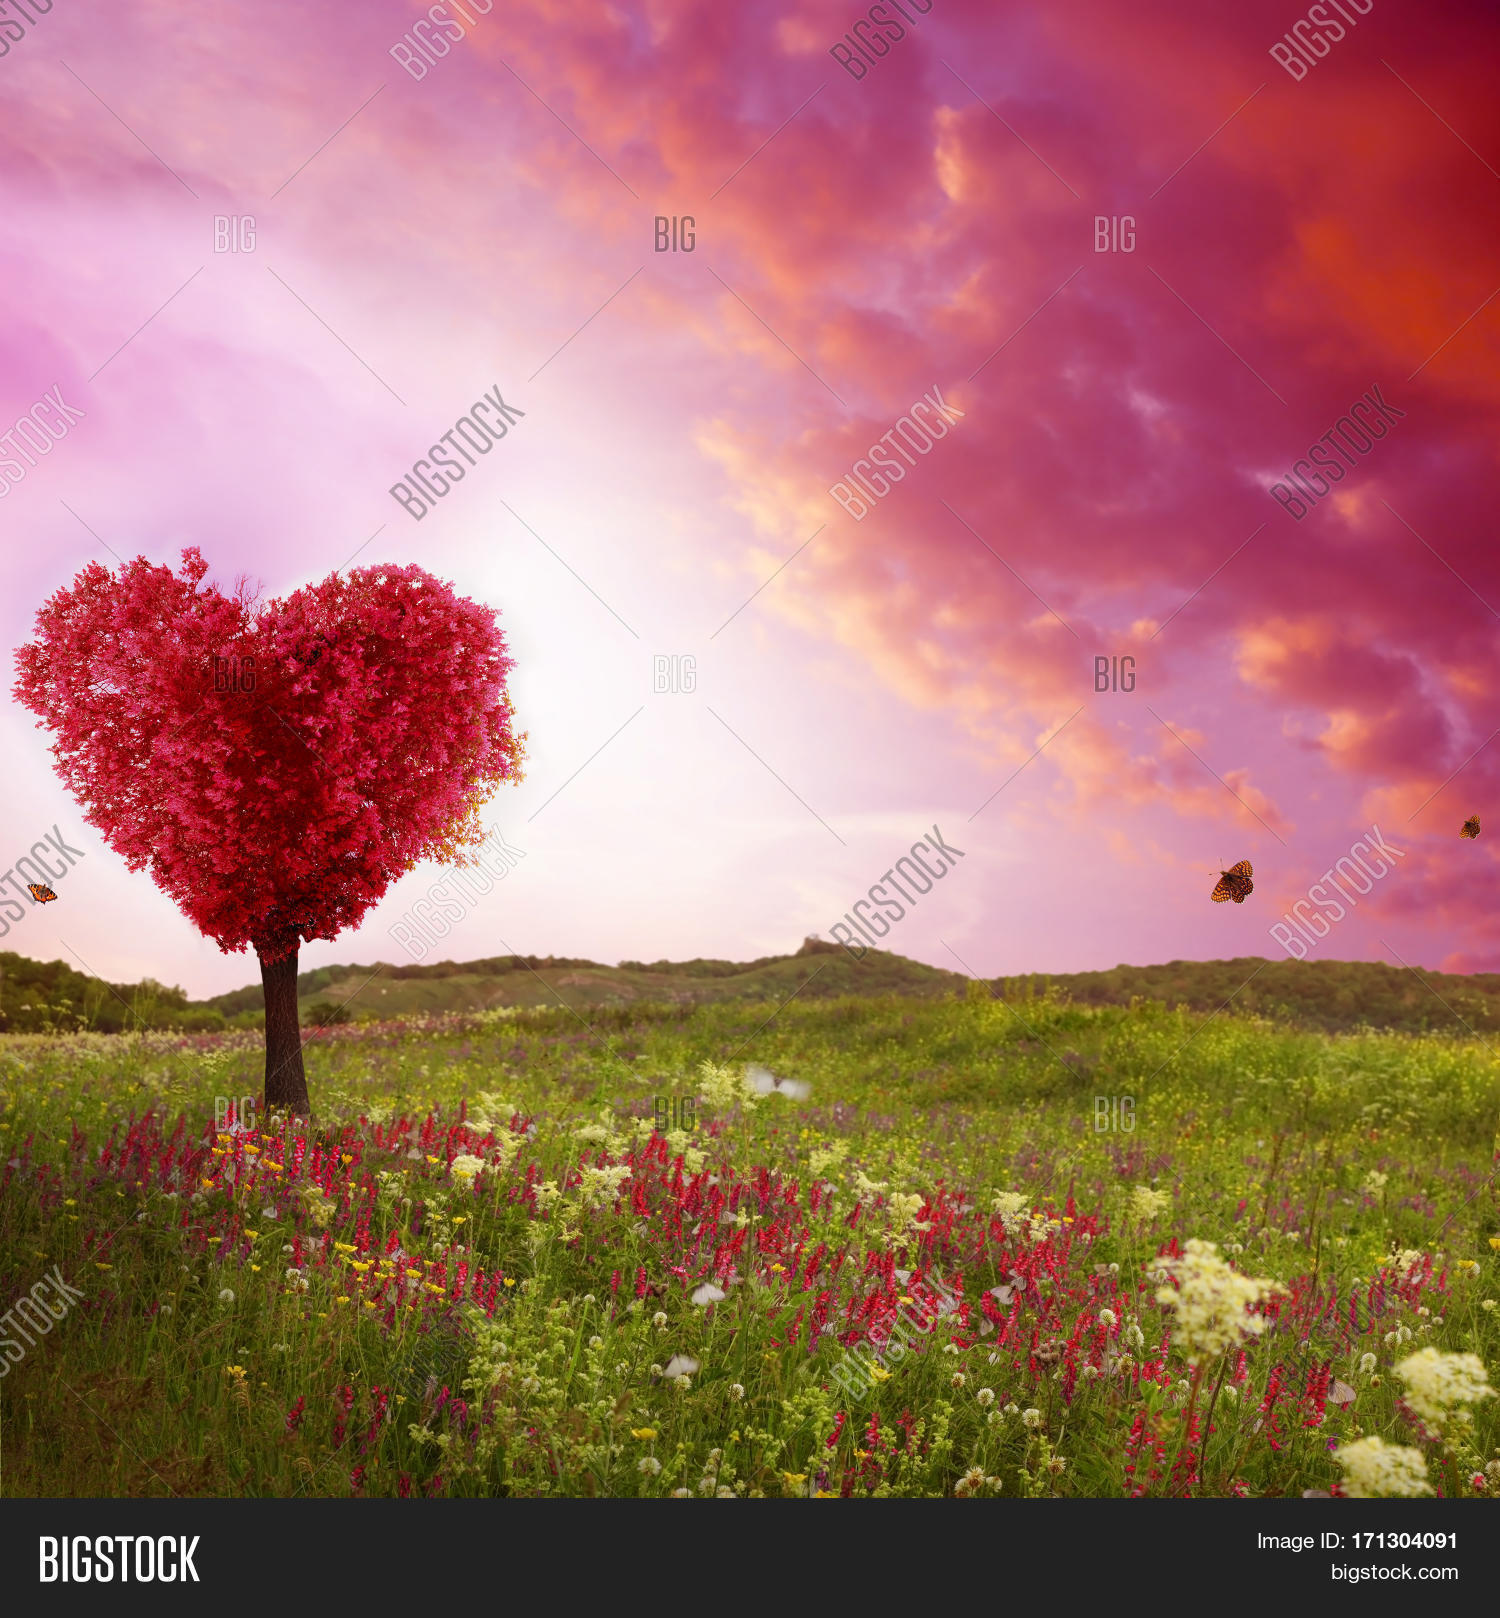 Tree Love Spring Red Image Photo Free Trial Bigstock